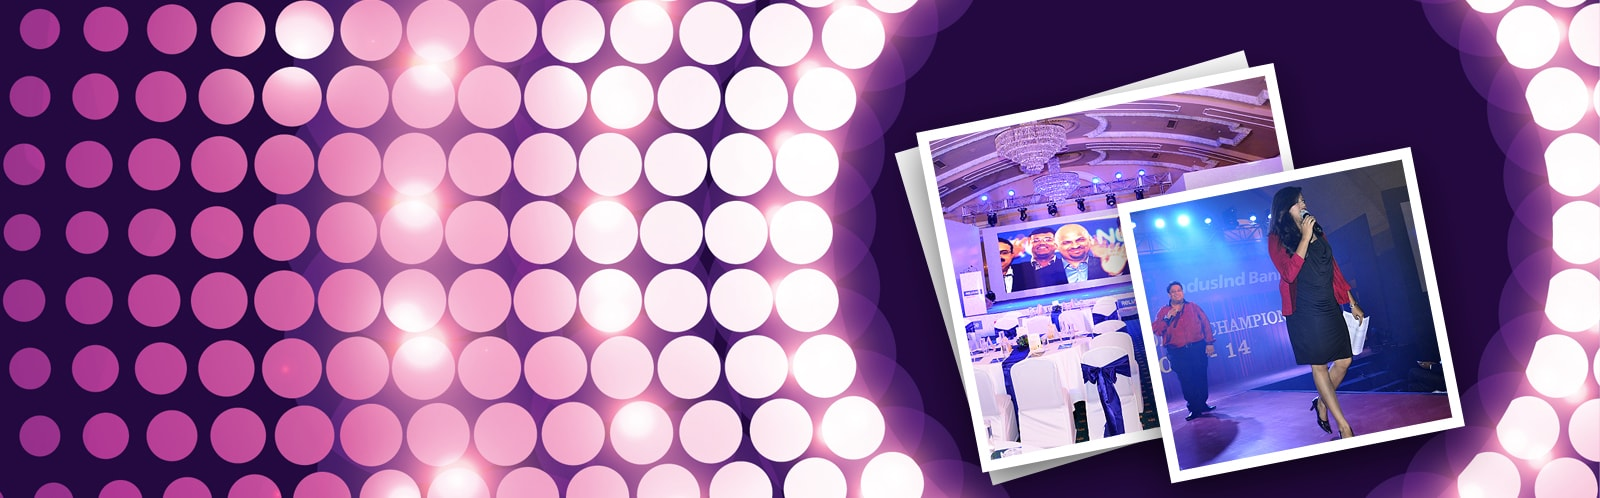 Event Management Company in India- My Event India